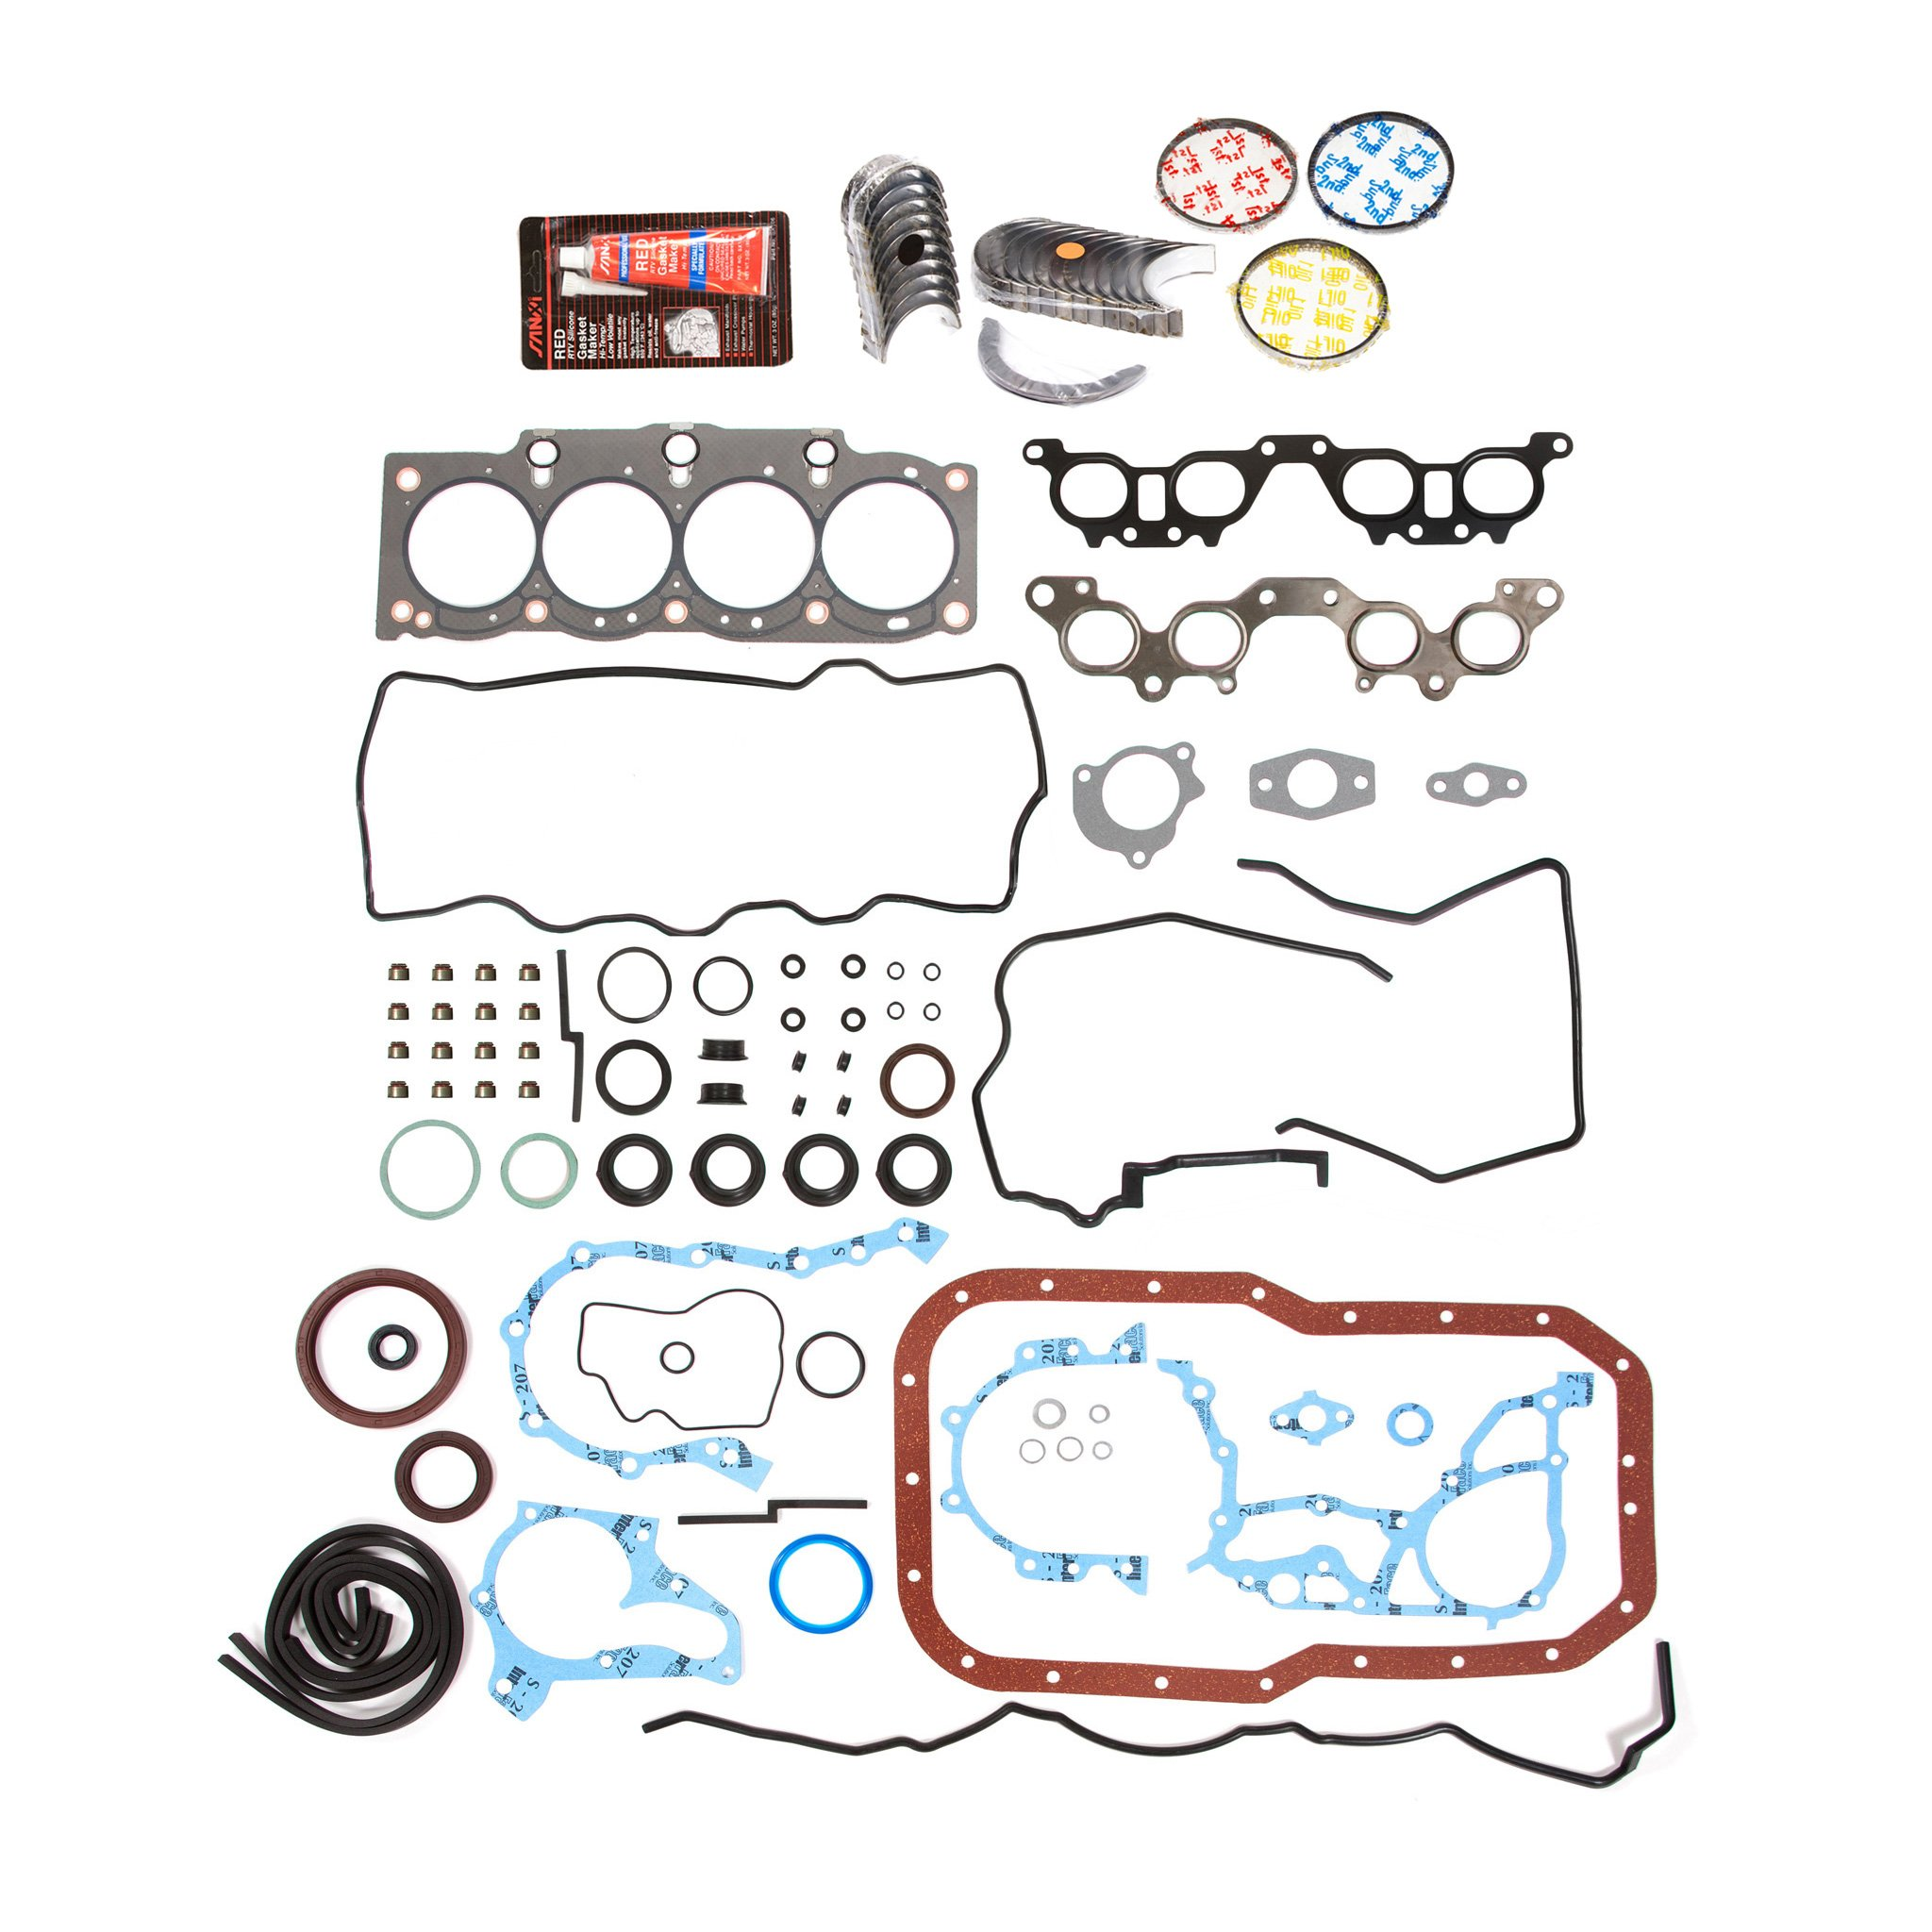 Evergreen Engine Rering Kit FSBRR2021EVE 90-96 Toyota MR2 Camry 2.2 5SFE Full Gasket Set, Standard Size Main Rod Bearings, Standard Size Piston Rings by Evergreen Parts And Components